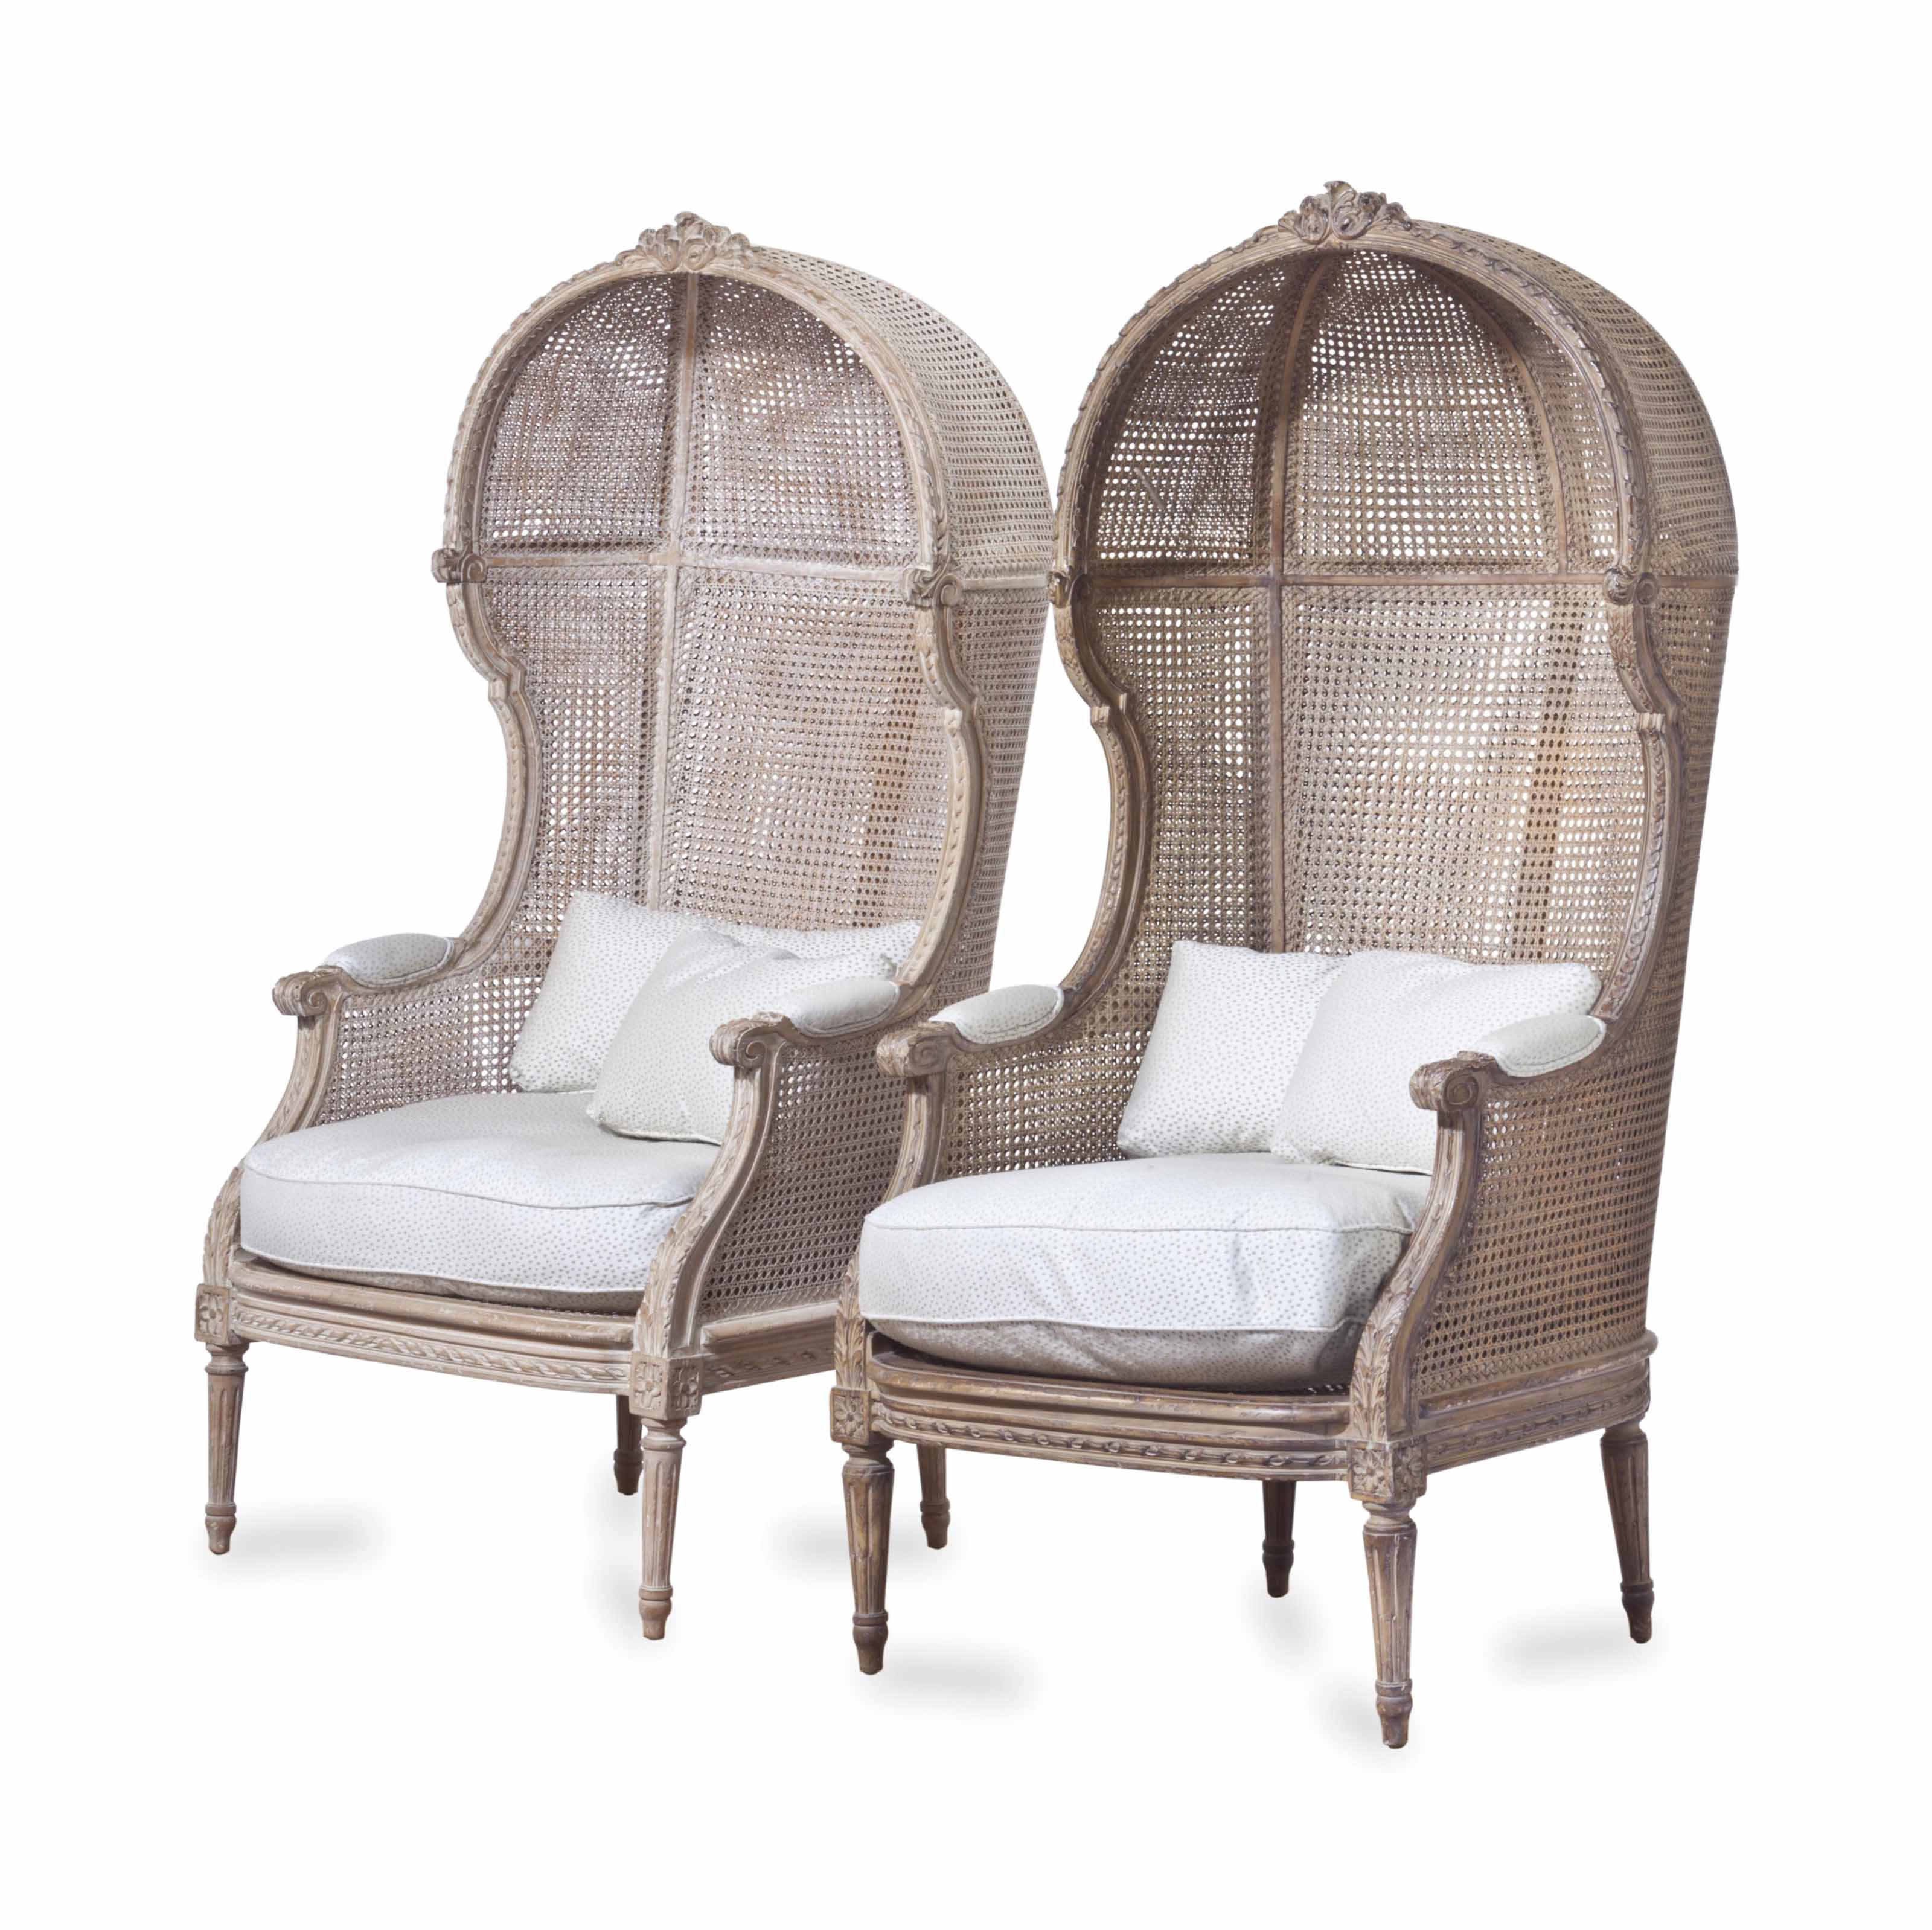 A PAIR OF LOUIS XVI STYLE LIMED BEECHWOOD AND CANED PORTER'S CHAIRS